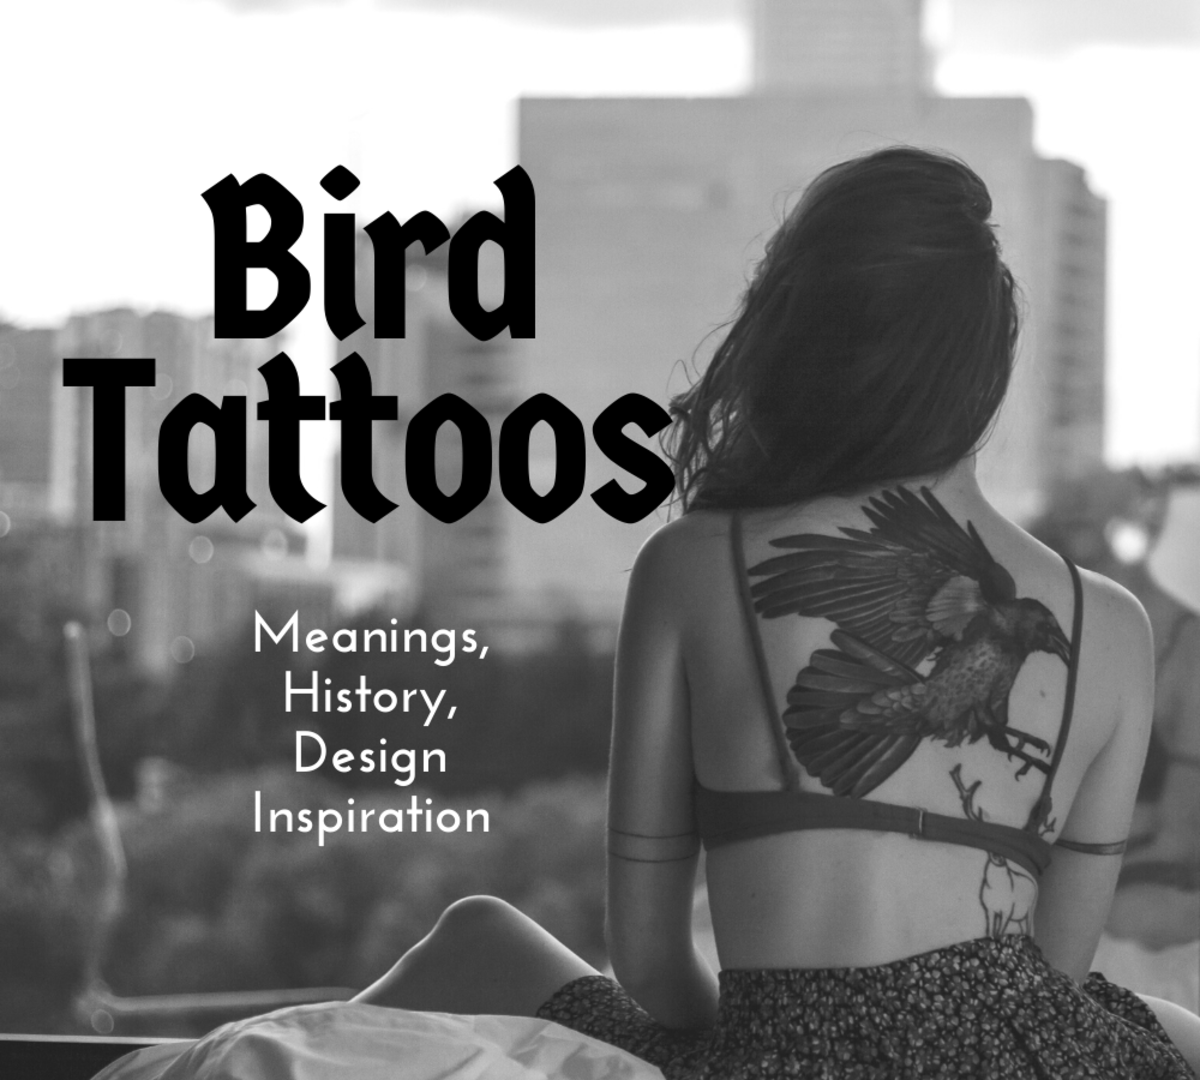 If you're considering a bird tattoo, get inspired by this collection of ideas and details about what different birds symbolize.